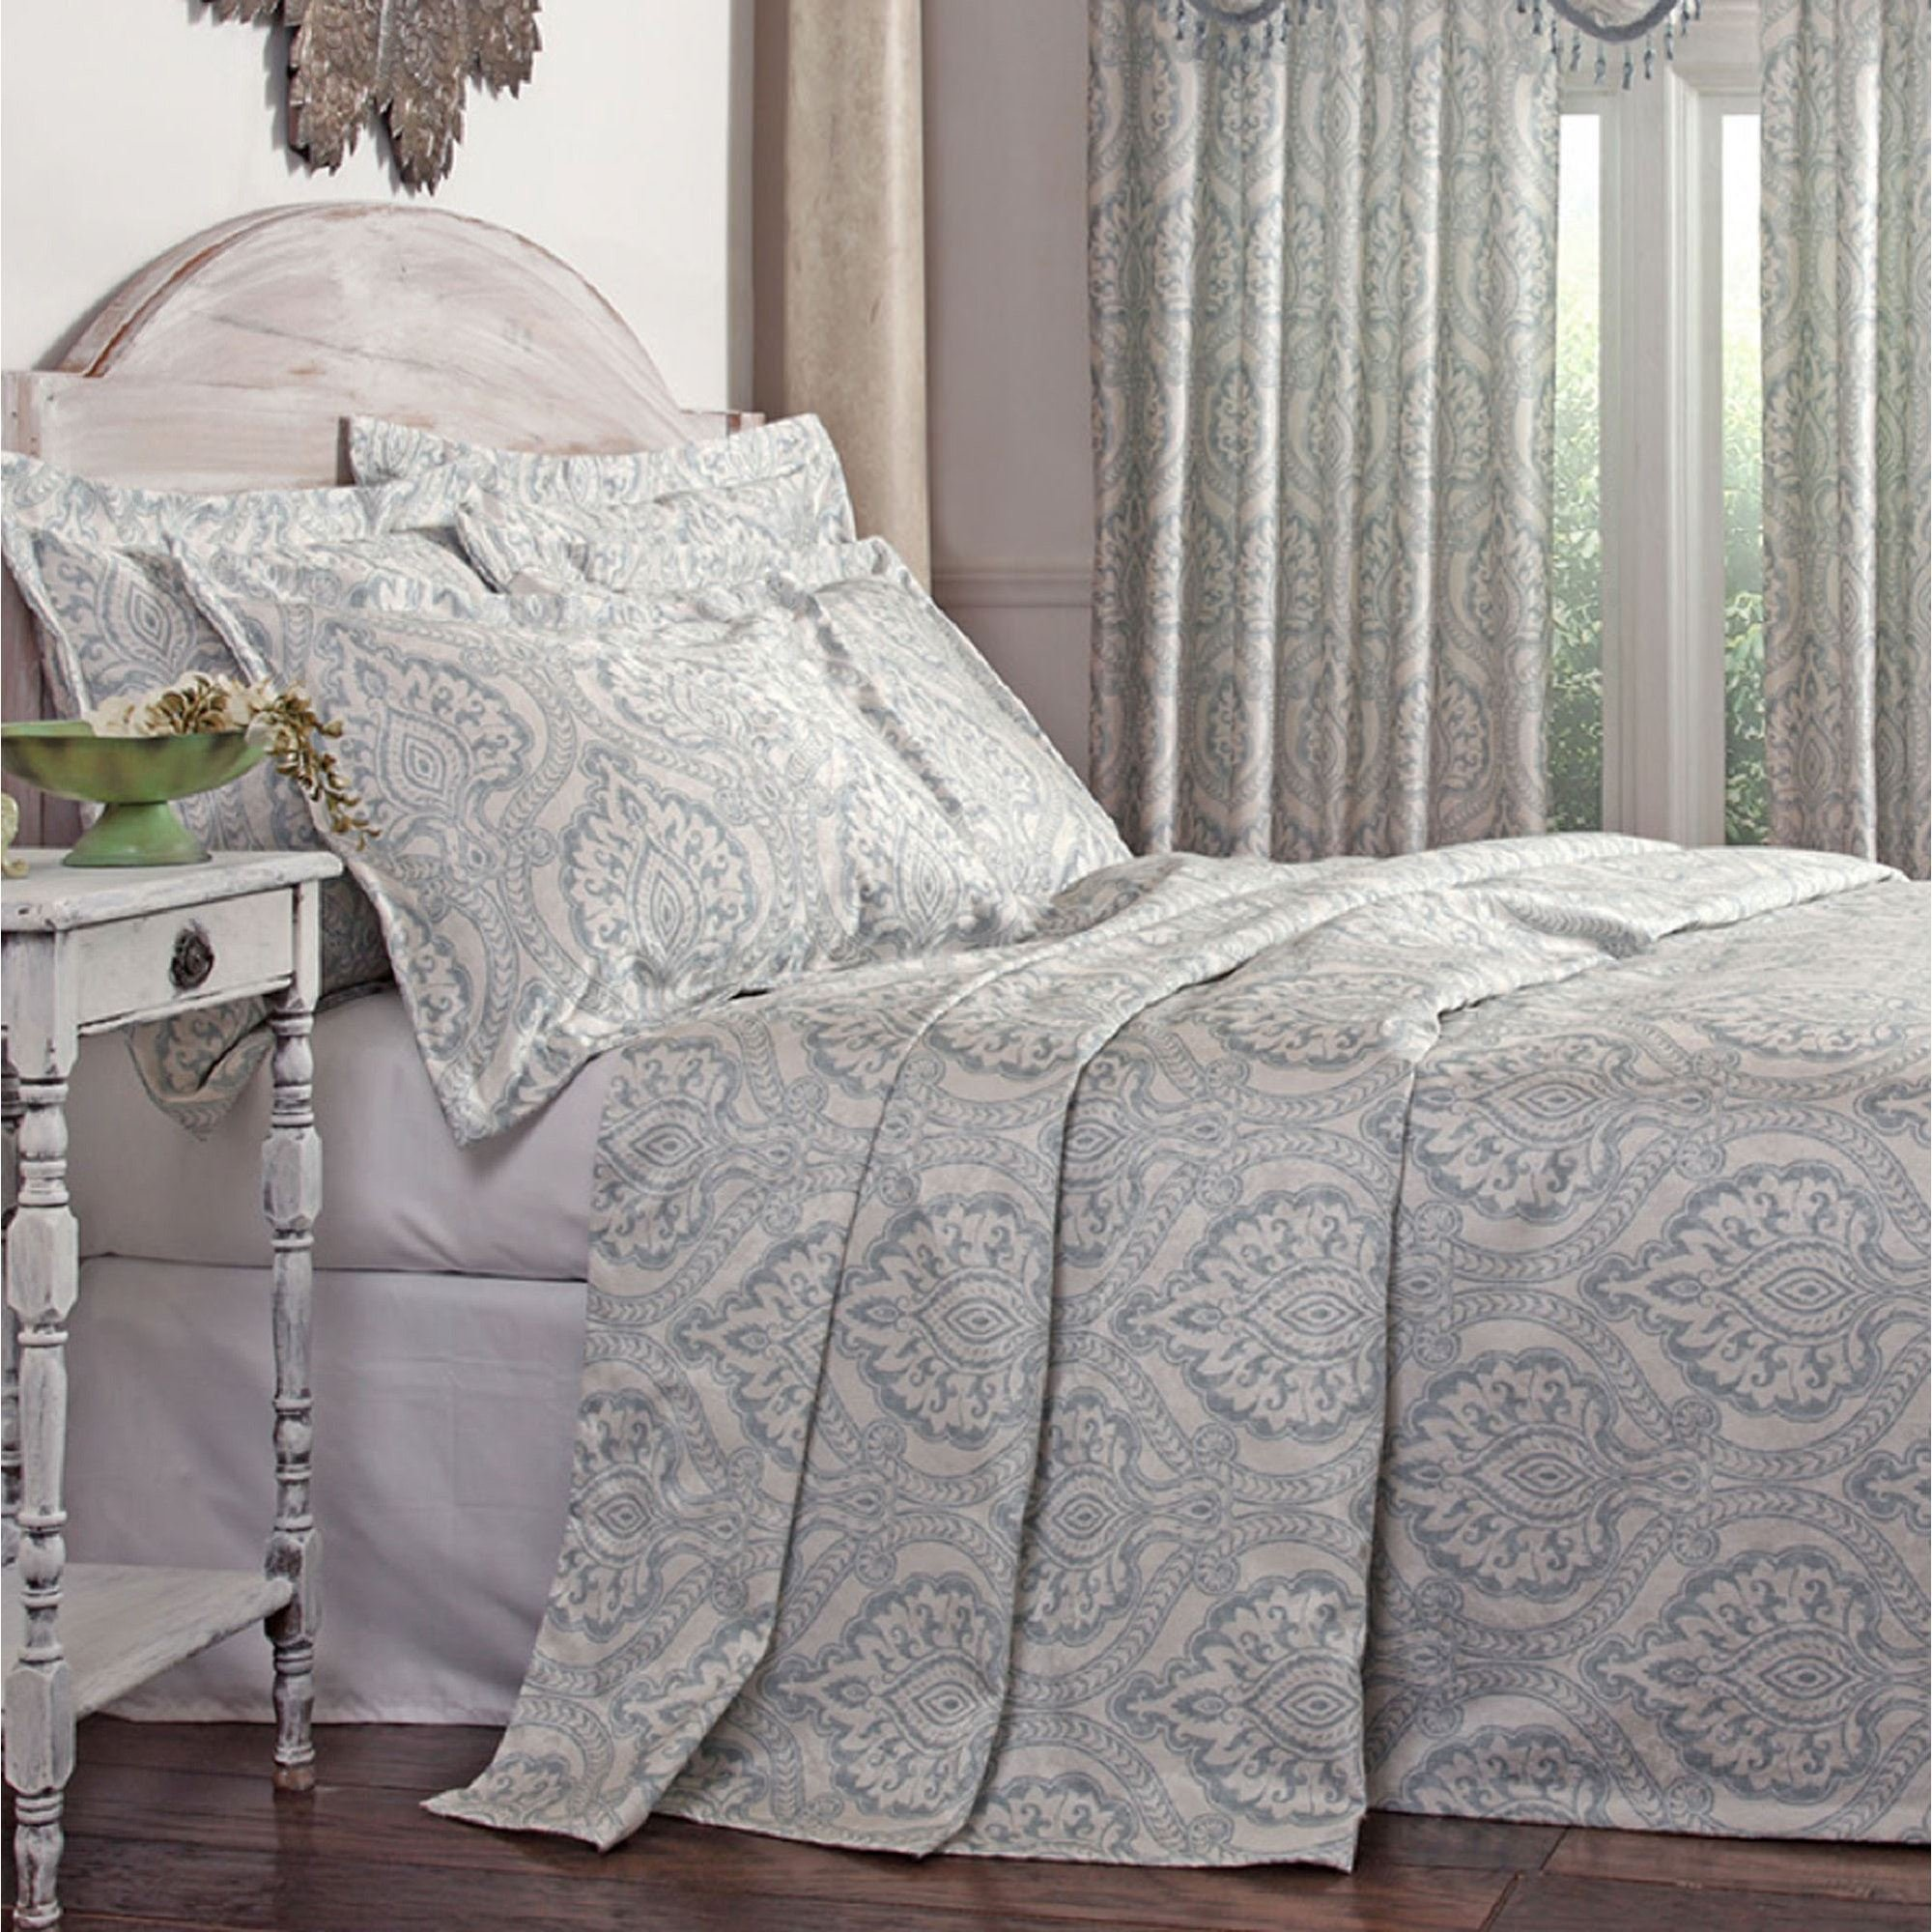 Best Santorini Lightweight Damask Bedspread Bedding With Pictures